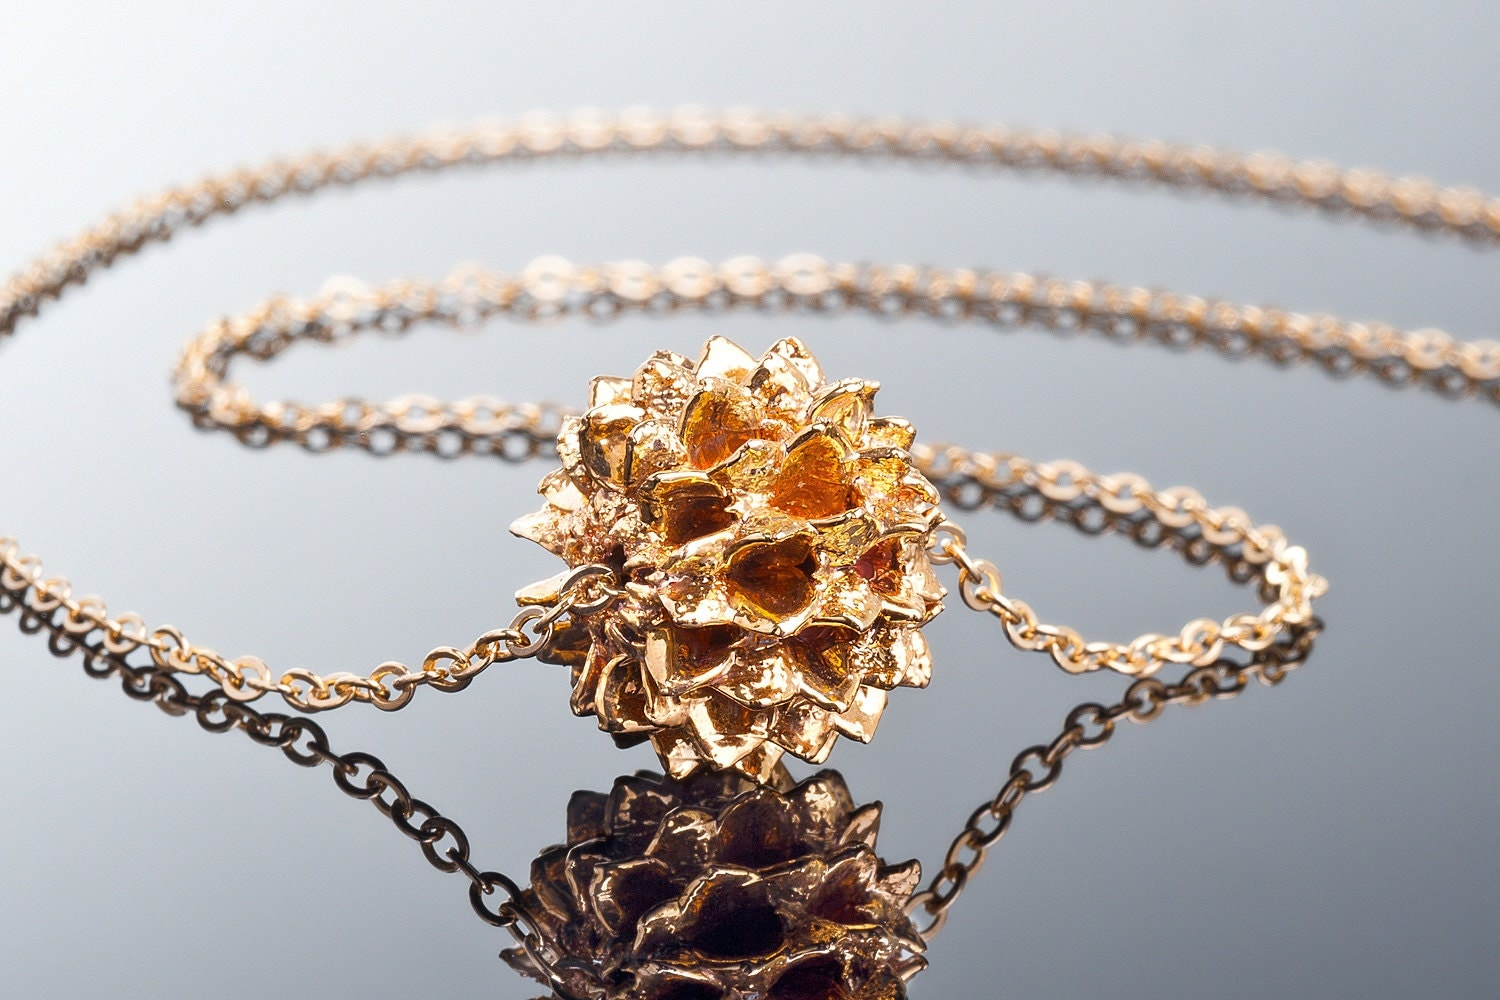 Natural jewelry velancian seed in gold 24k nature jewelry for Natural seeds for jewelry making